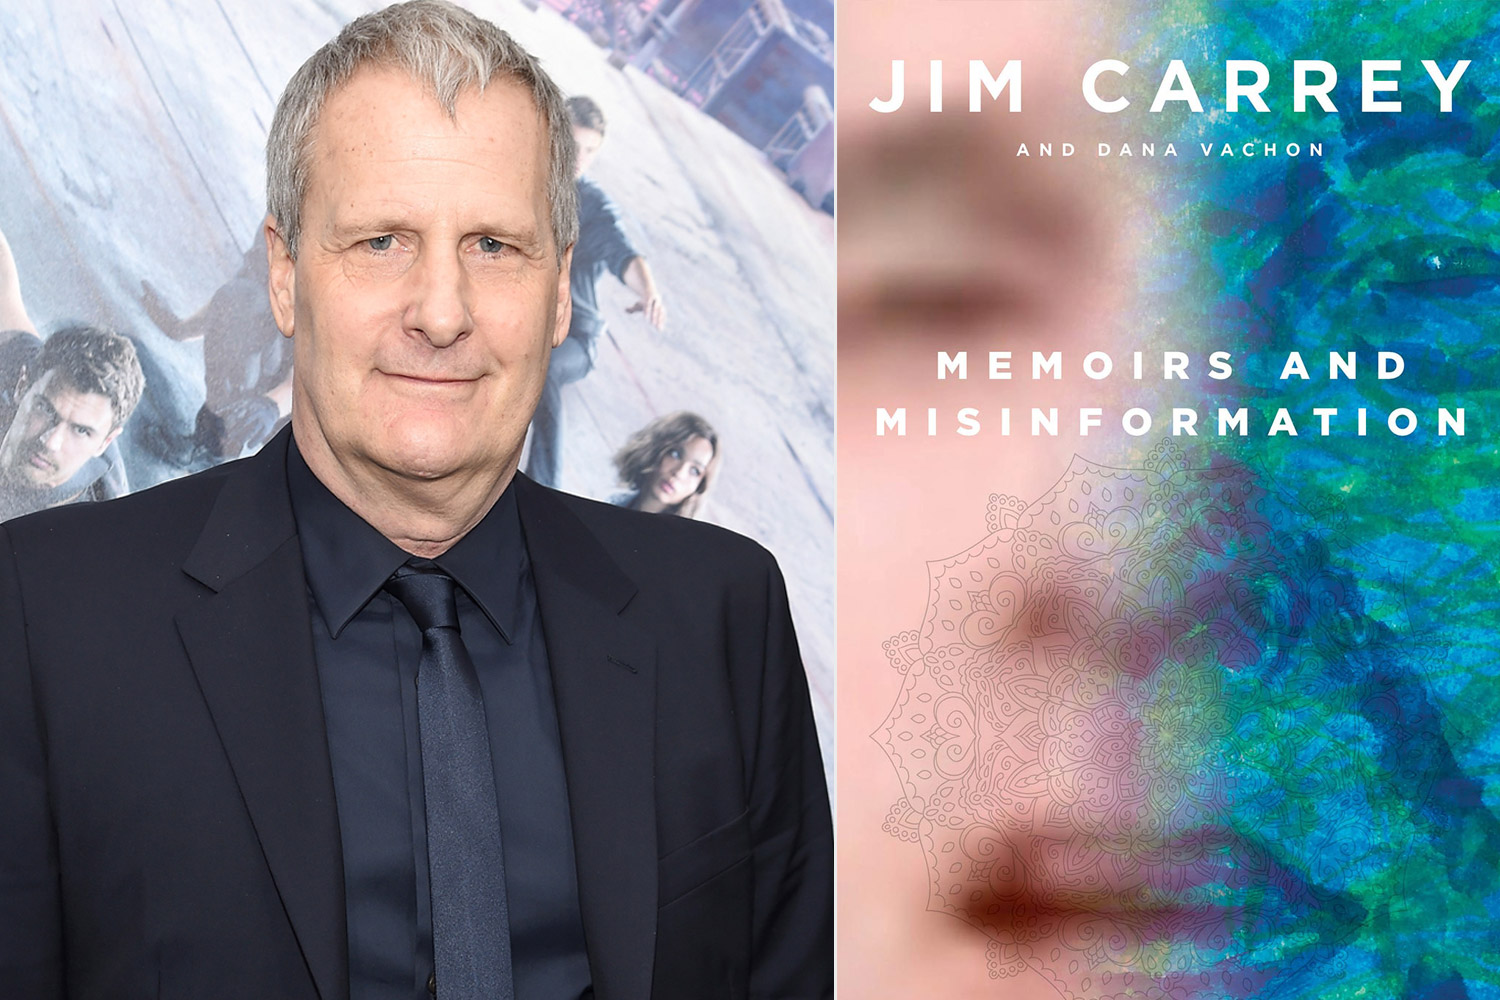 memoirs and missinformation, Jeff daniels